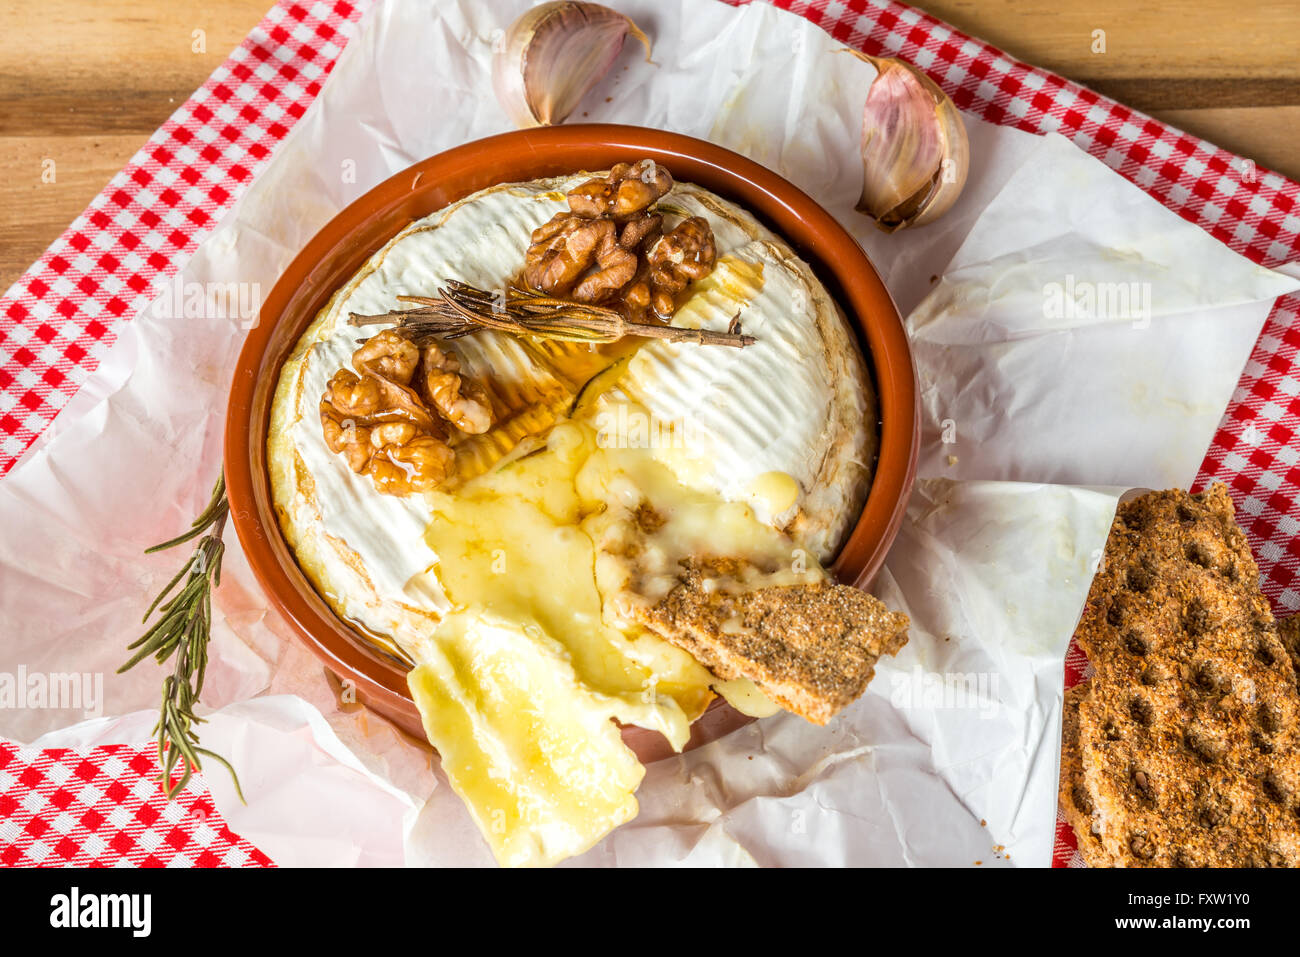 Baked Camembert cheese with Honey, Garlic and Rosemary - Stock Image